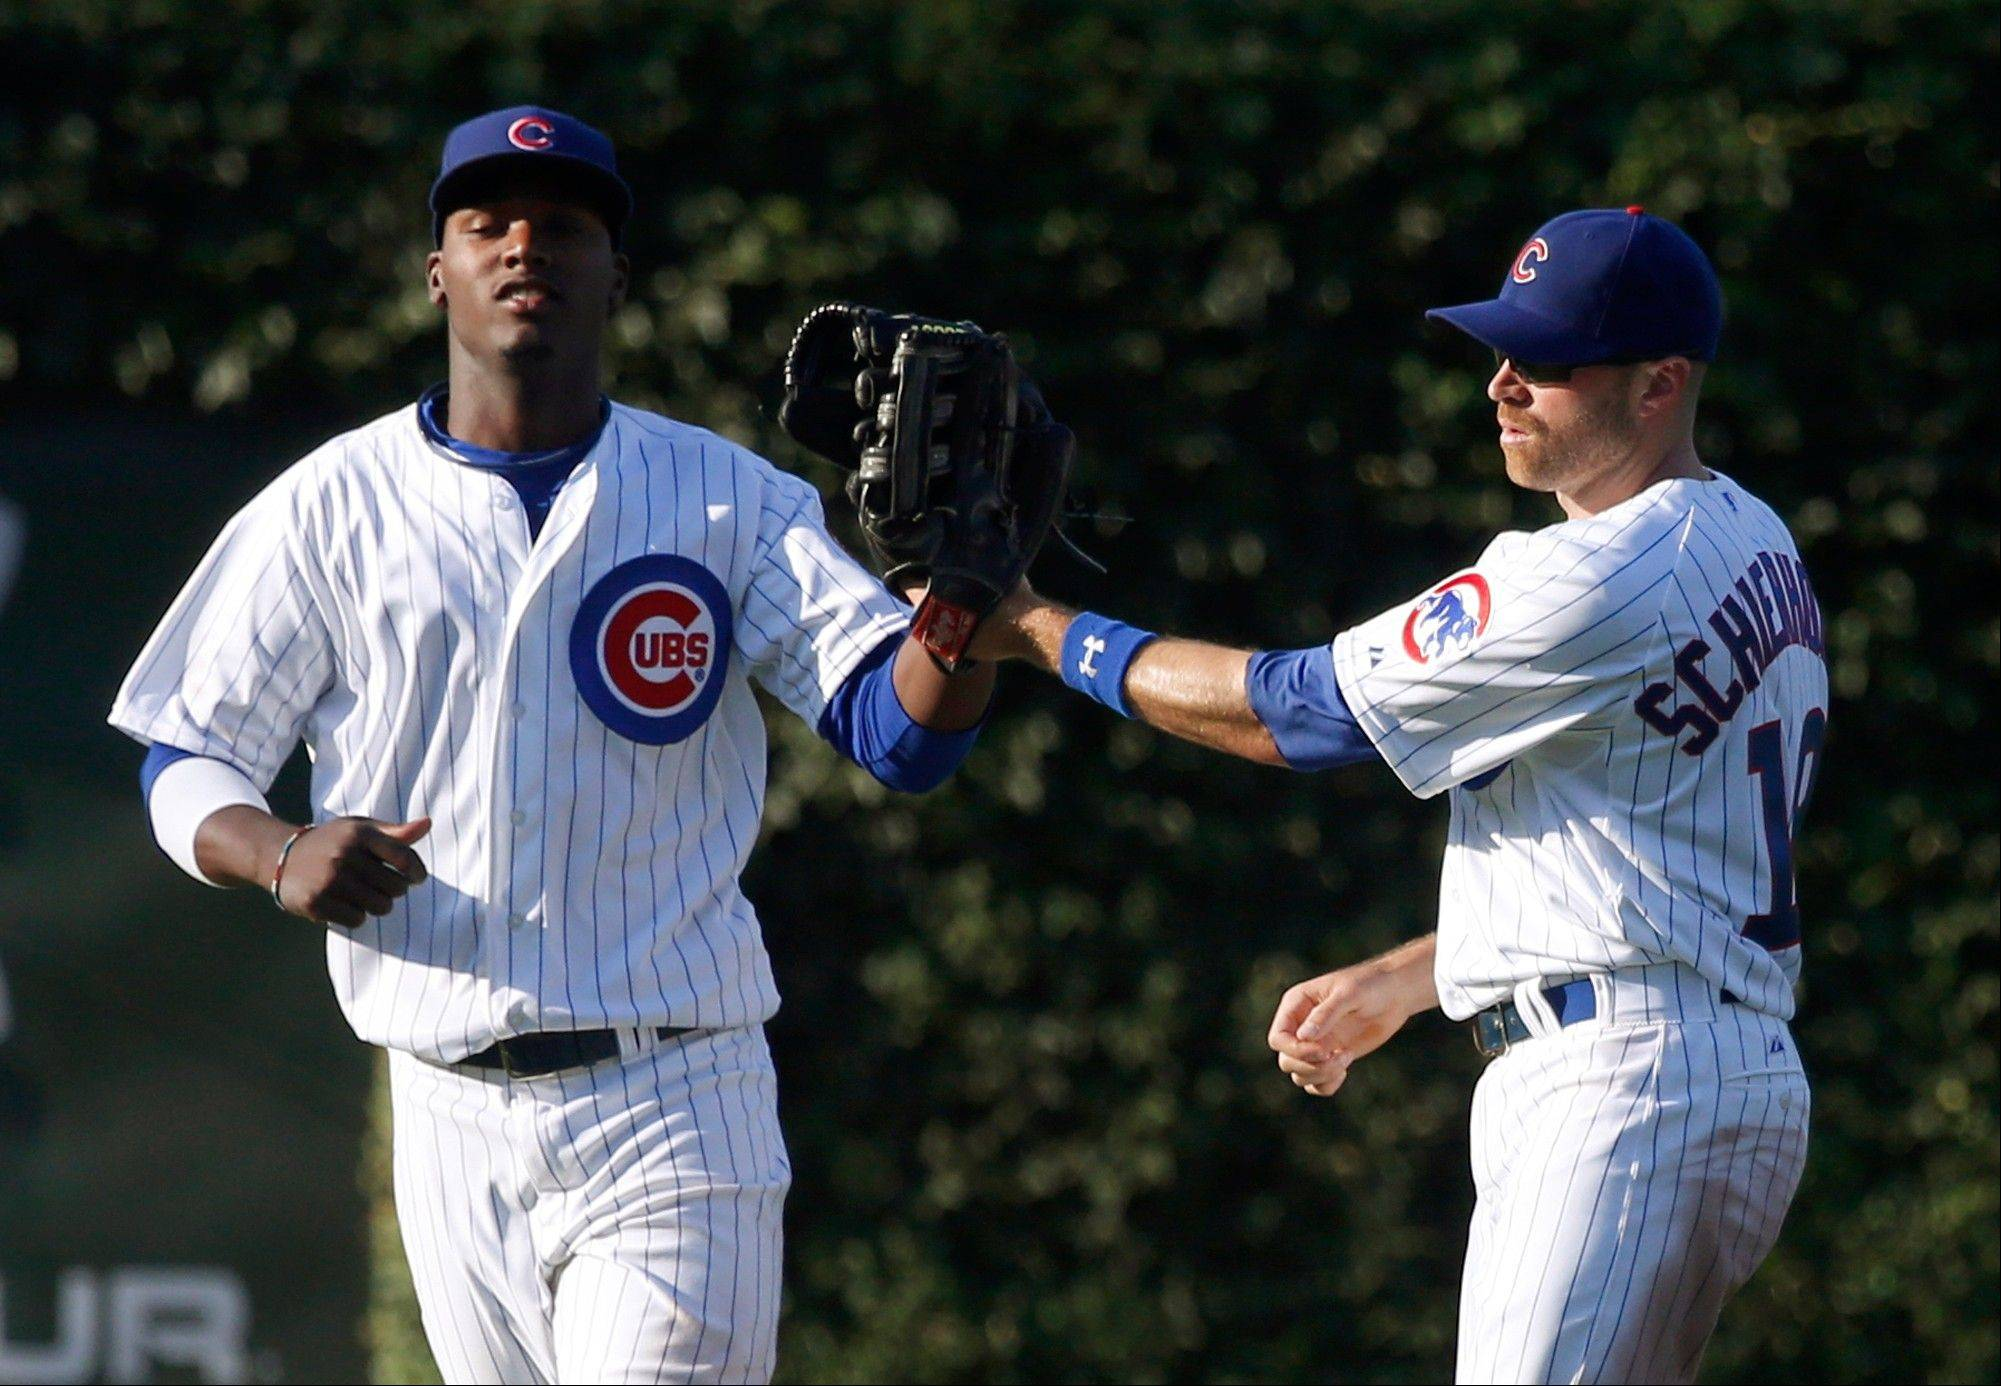 Cubs left fielder Junior Lake, left, and right fielder Nate Schierholtz celebrate the Cubs' 7-0 win over the St. Louis Cardinals in a baseball game Friday, Aug. 16, 2013, in Chicago.